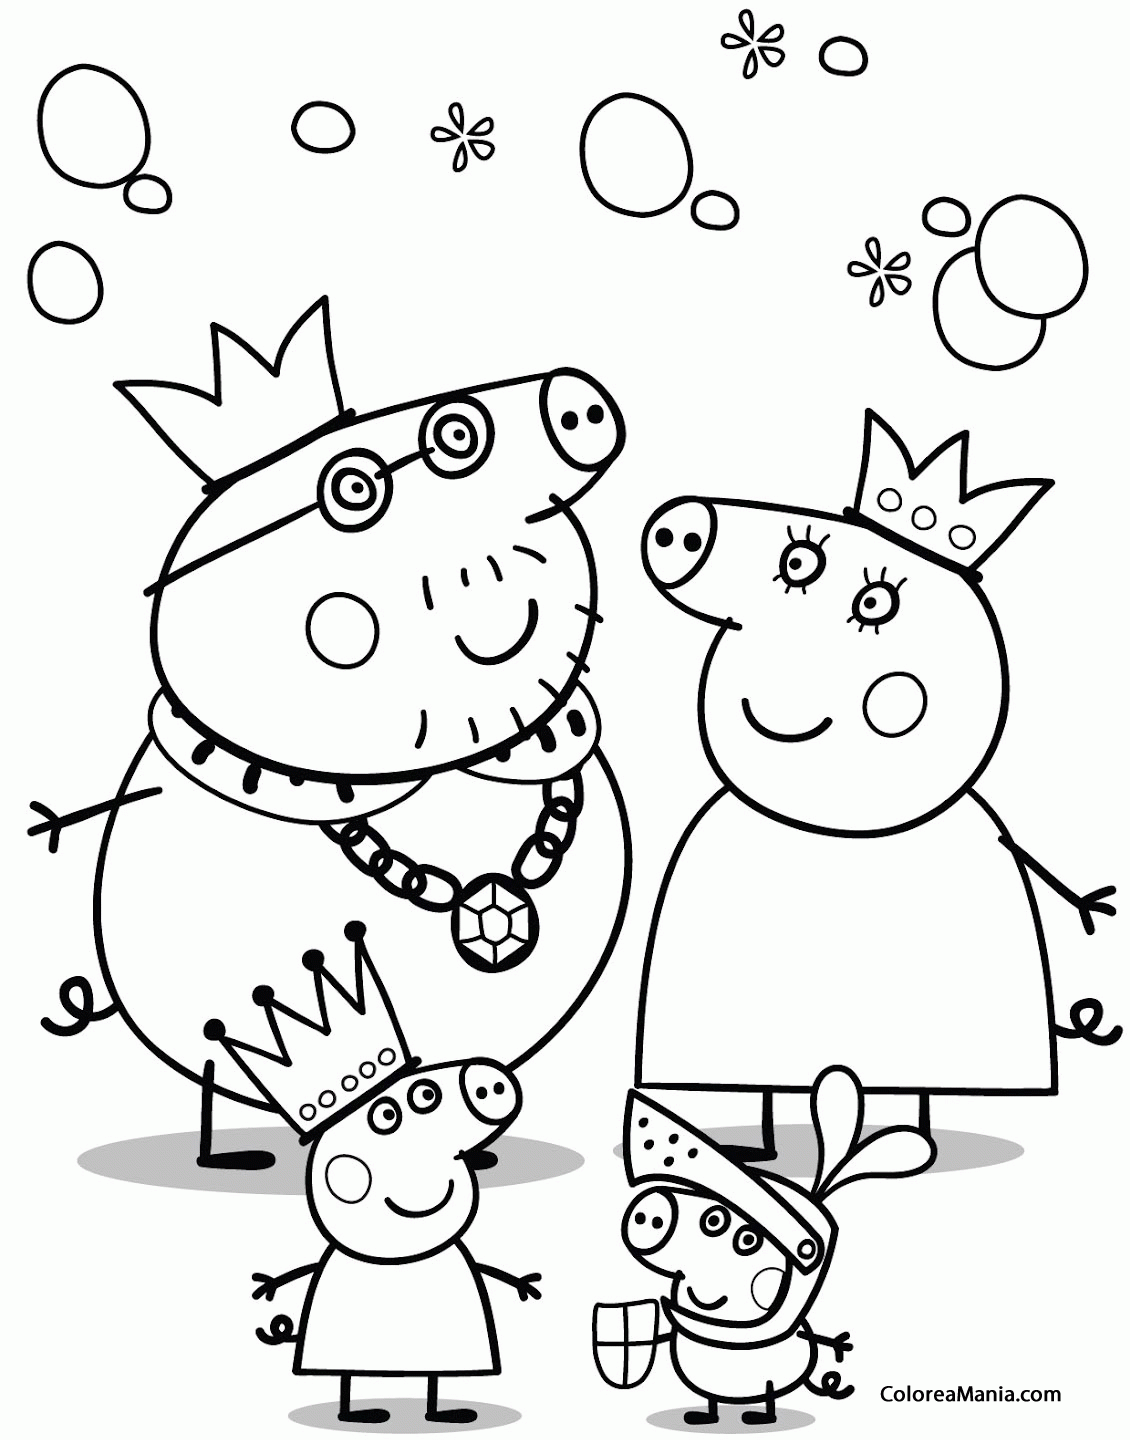 Colorear Peppa Pig príncipes y princesas (Peppa Pig), dibujo para ...